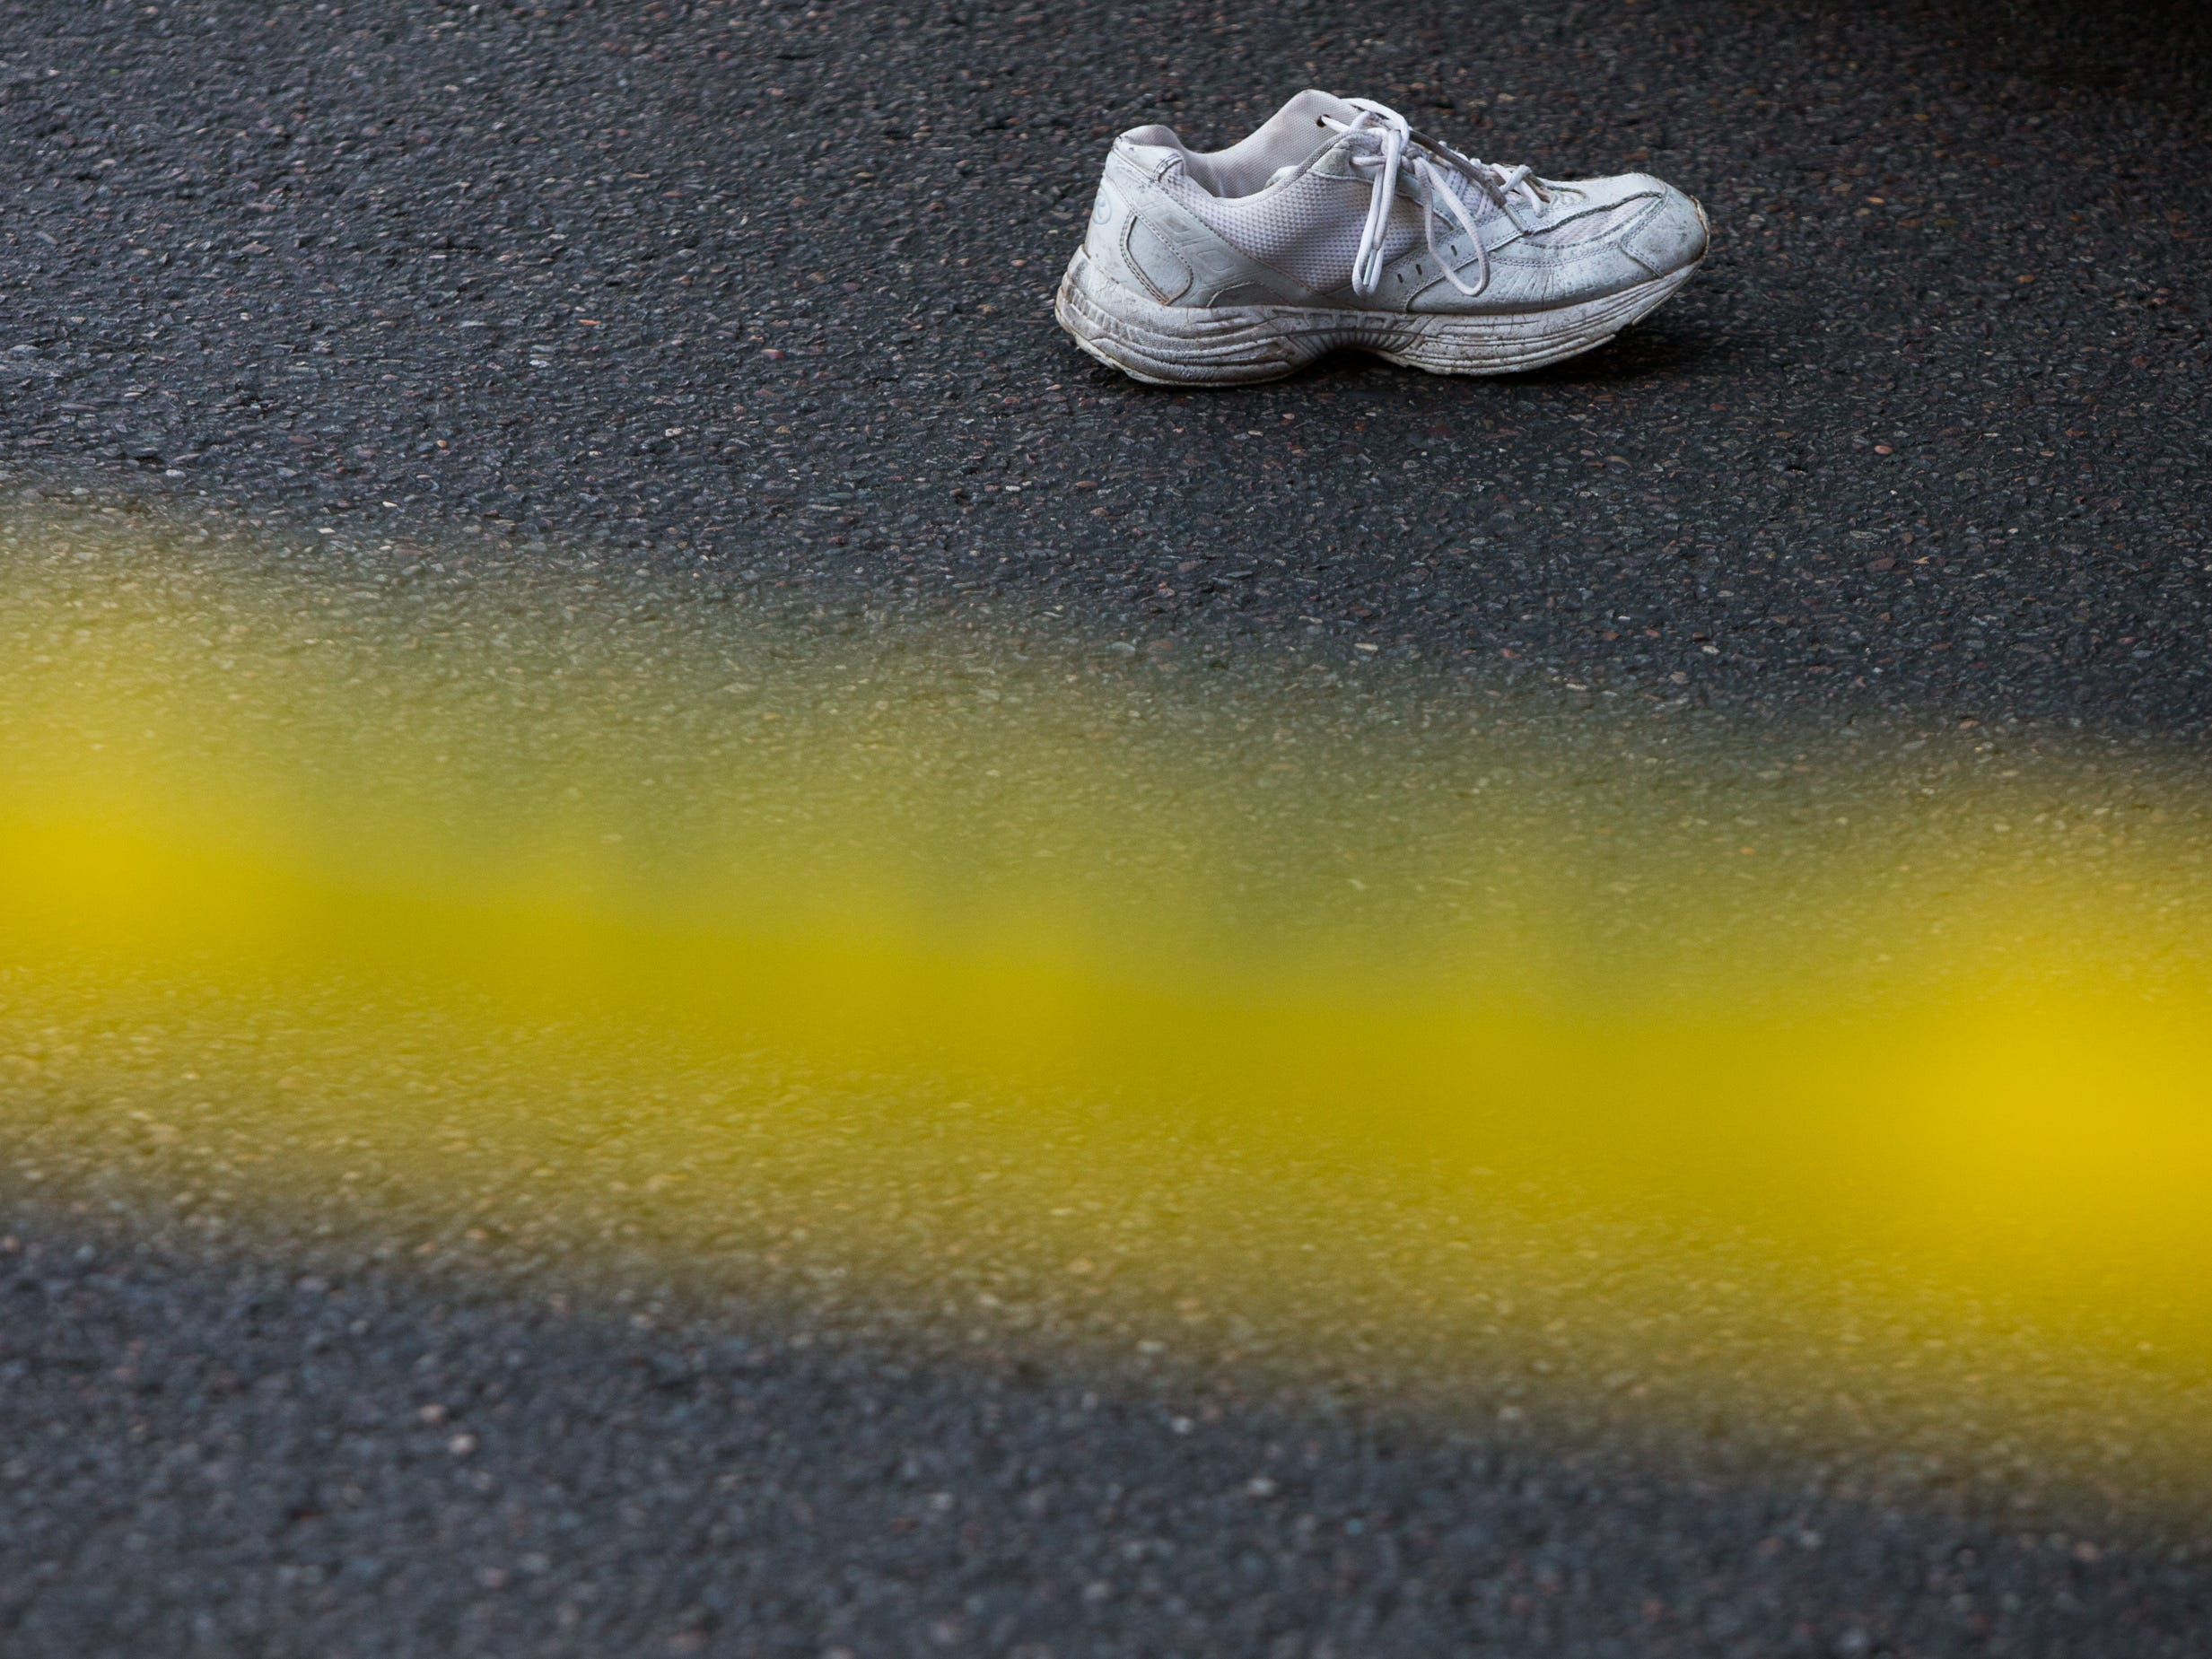 A pedestrian's shoe lies in the street on August 1, 2018, after being struck by a city bus on the corner of 1st Avenue and East Van Buren Street.